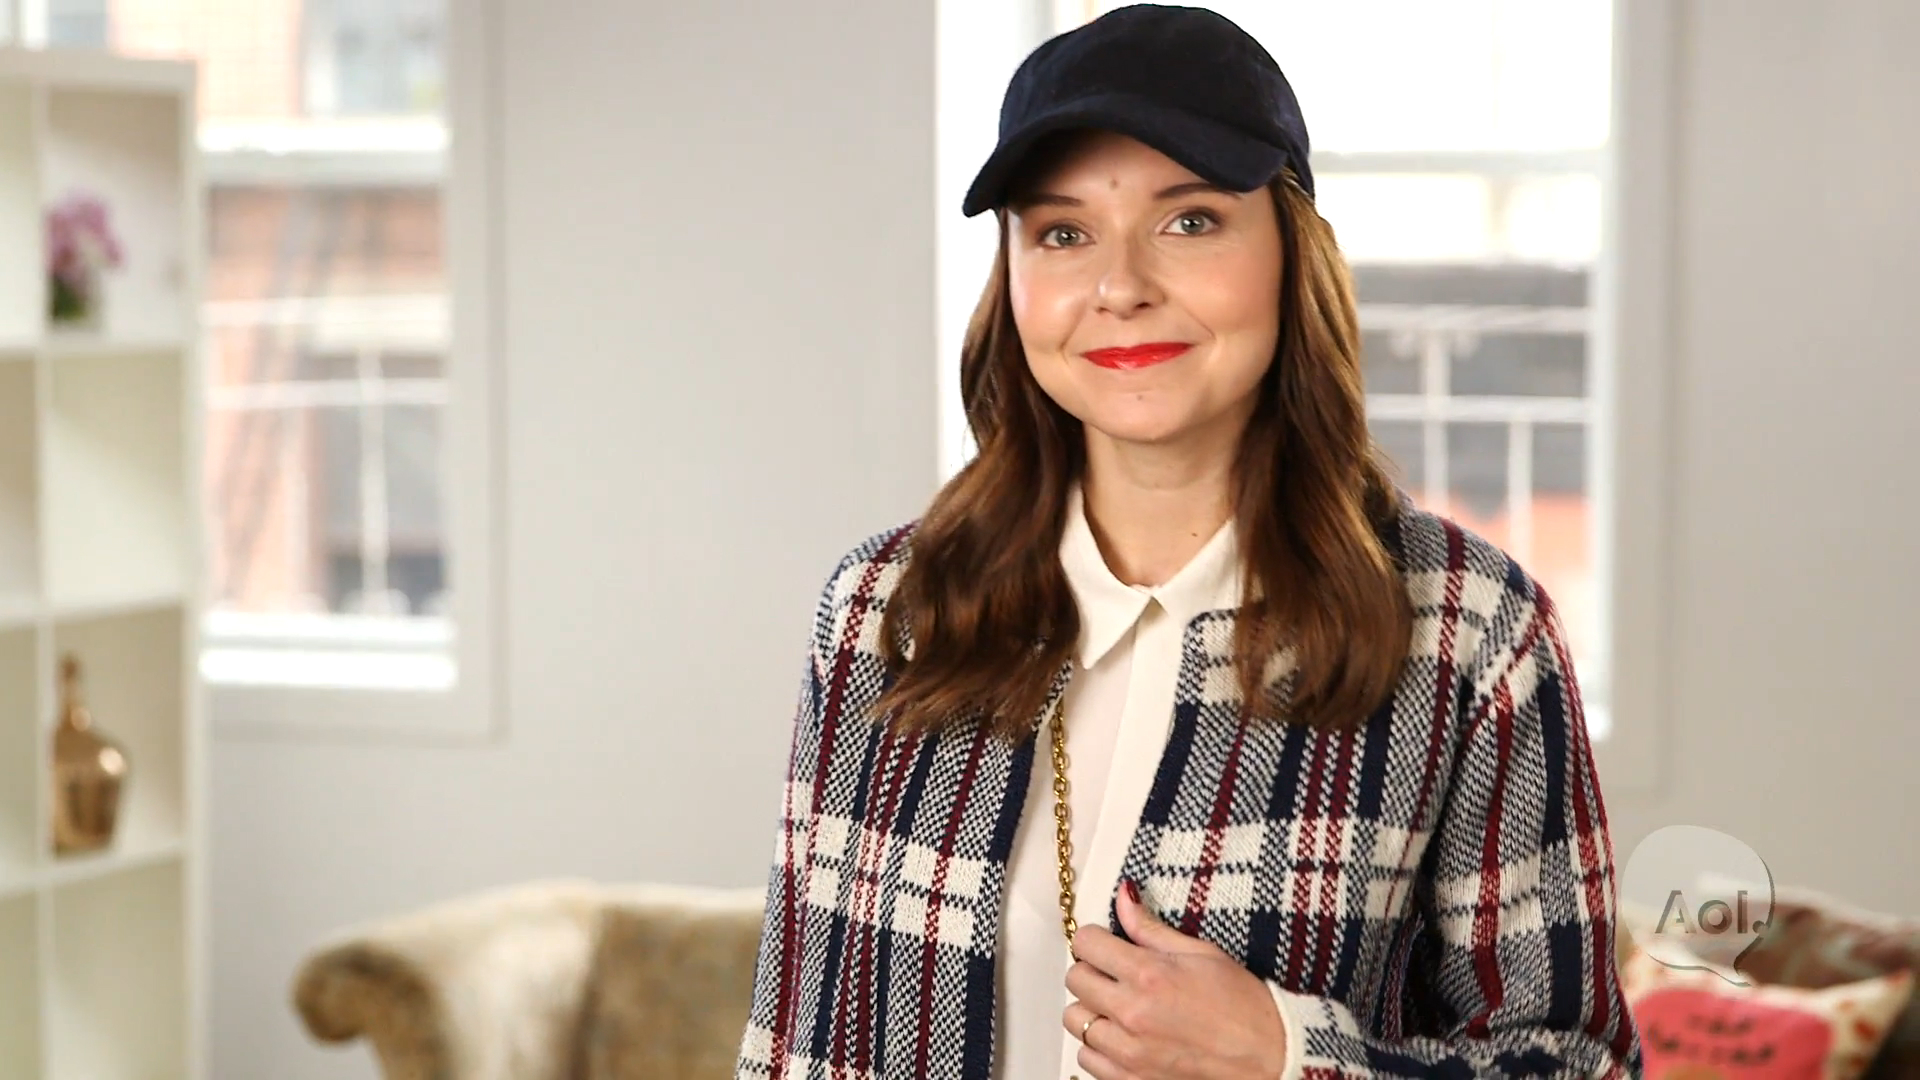 Get the Look: How to Dress Up A Baseball Hat